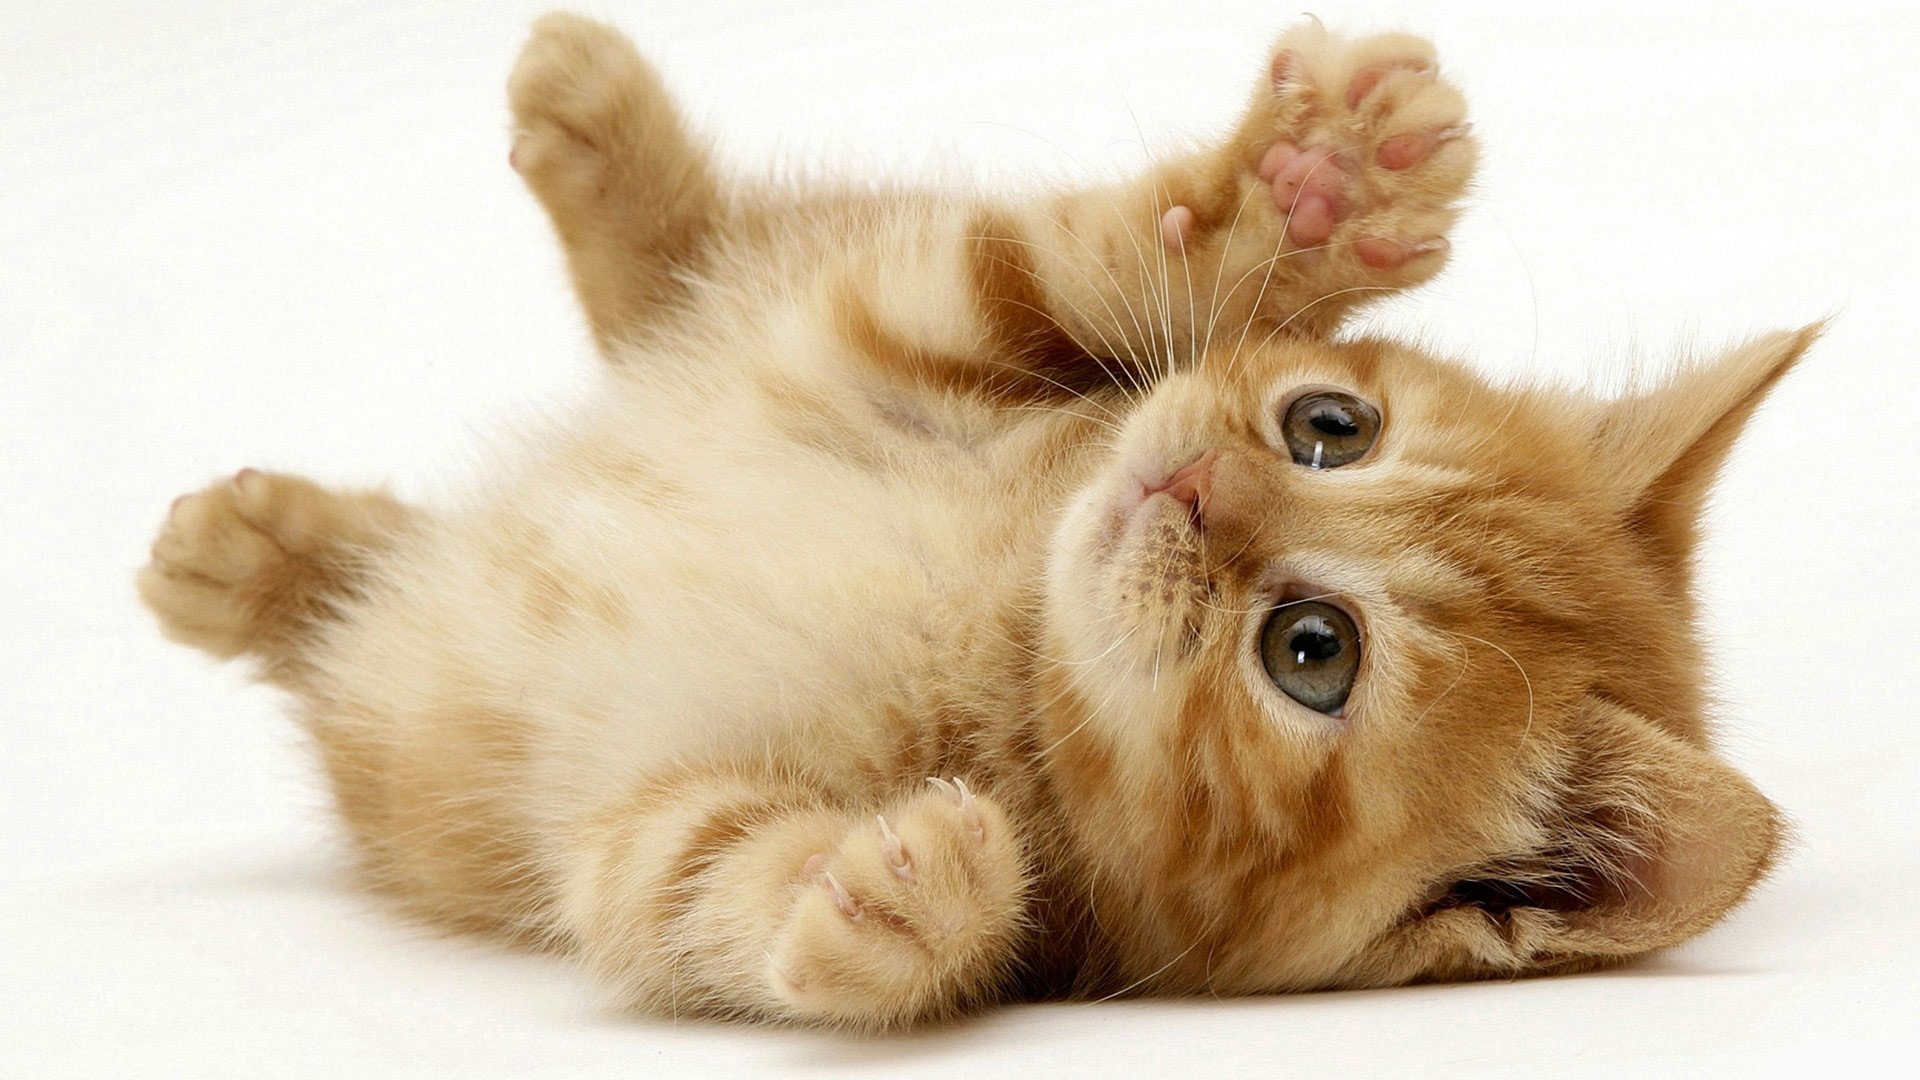 Cute Cats wallpaper 1920x1080 35141